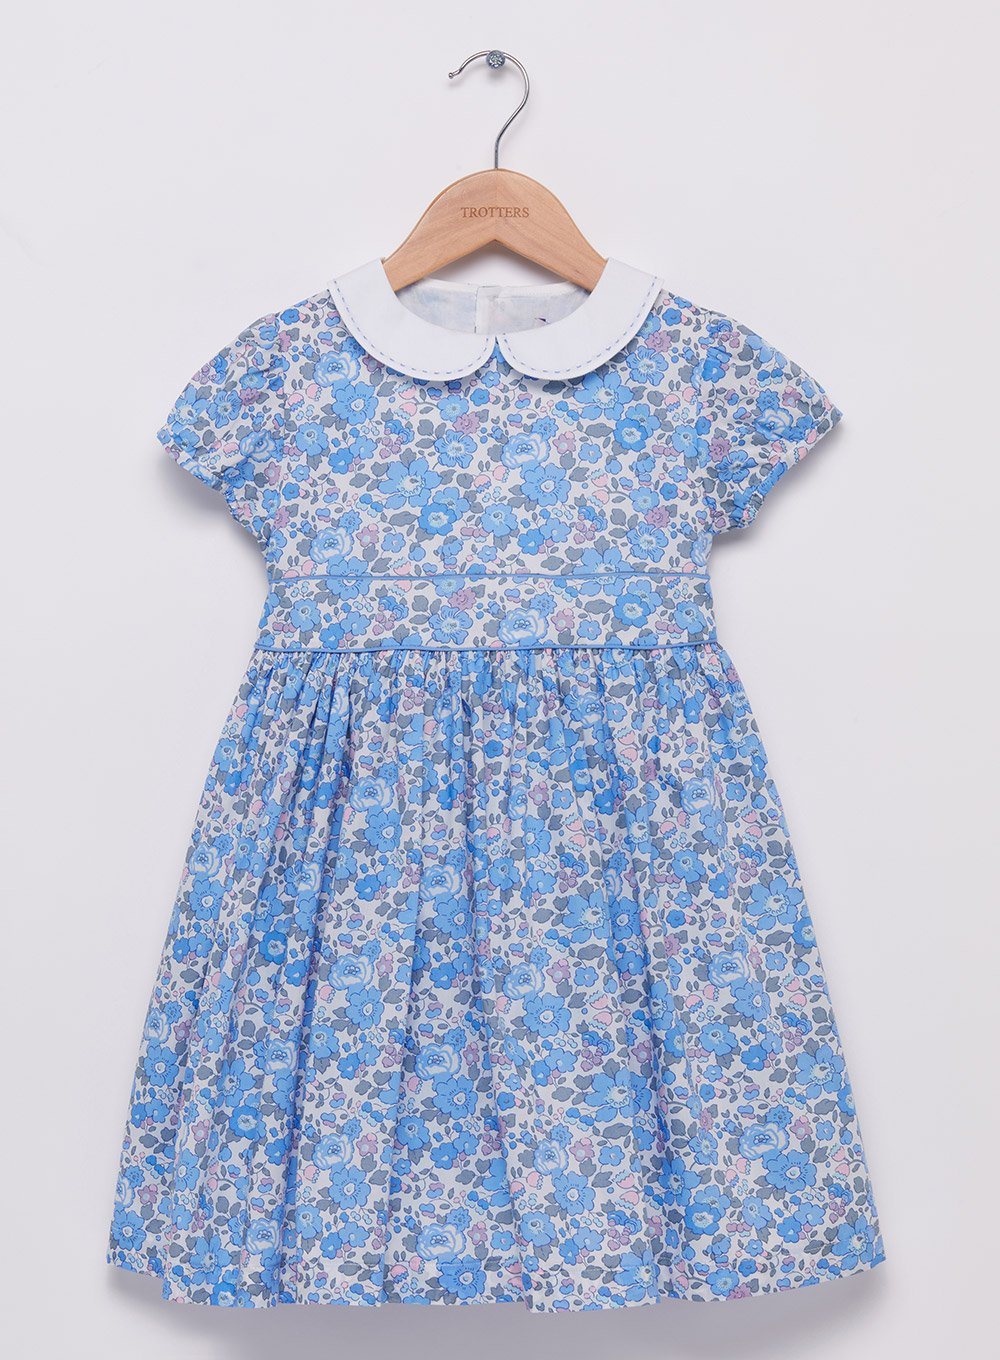 Lily Rose 'Betsy' Dress from Trotters